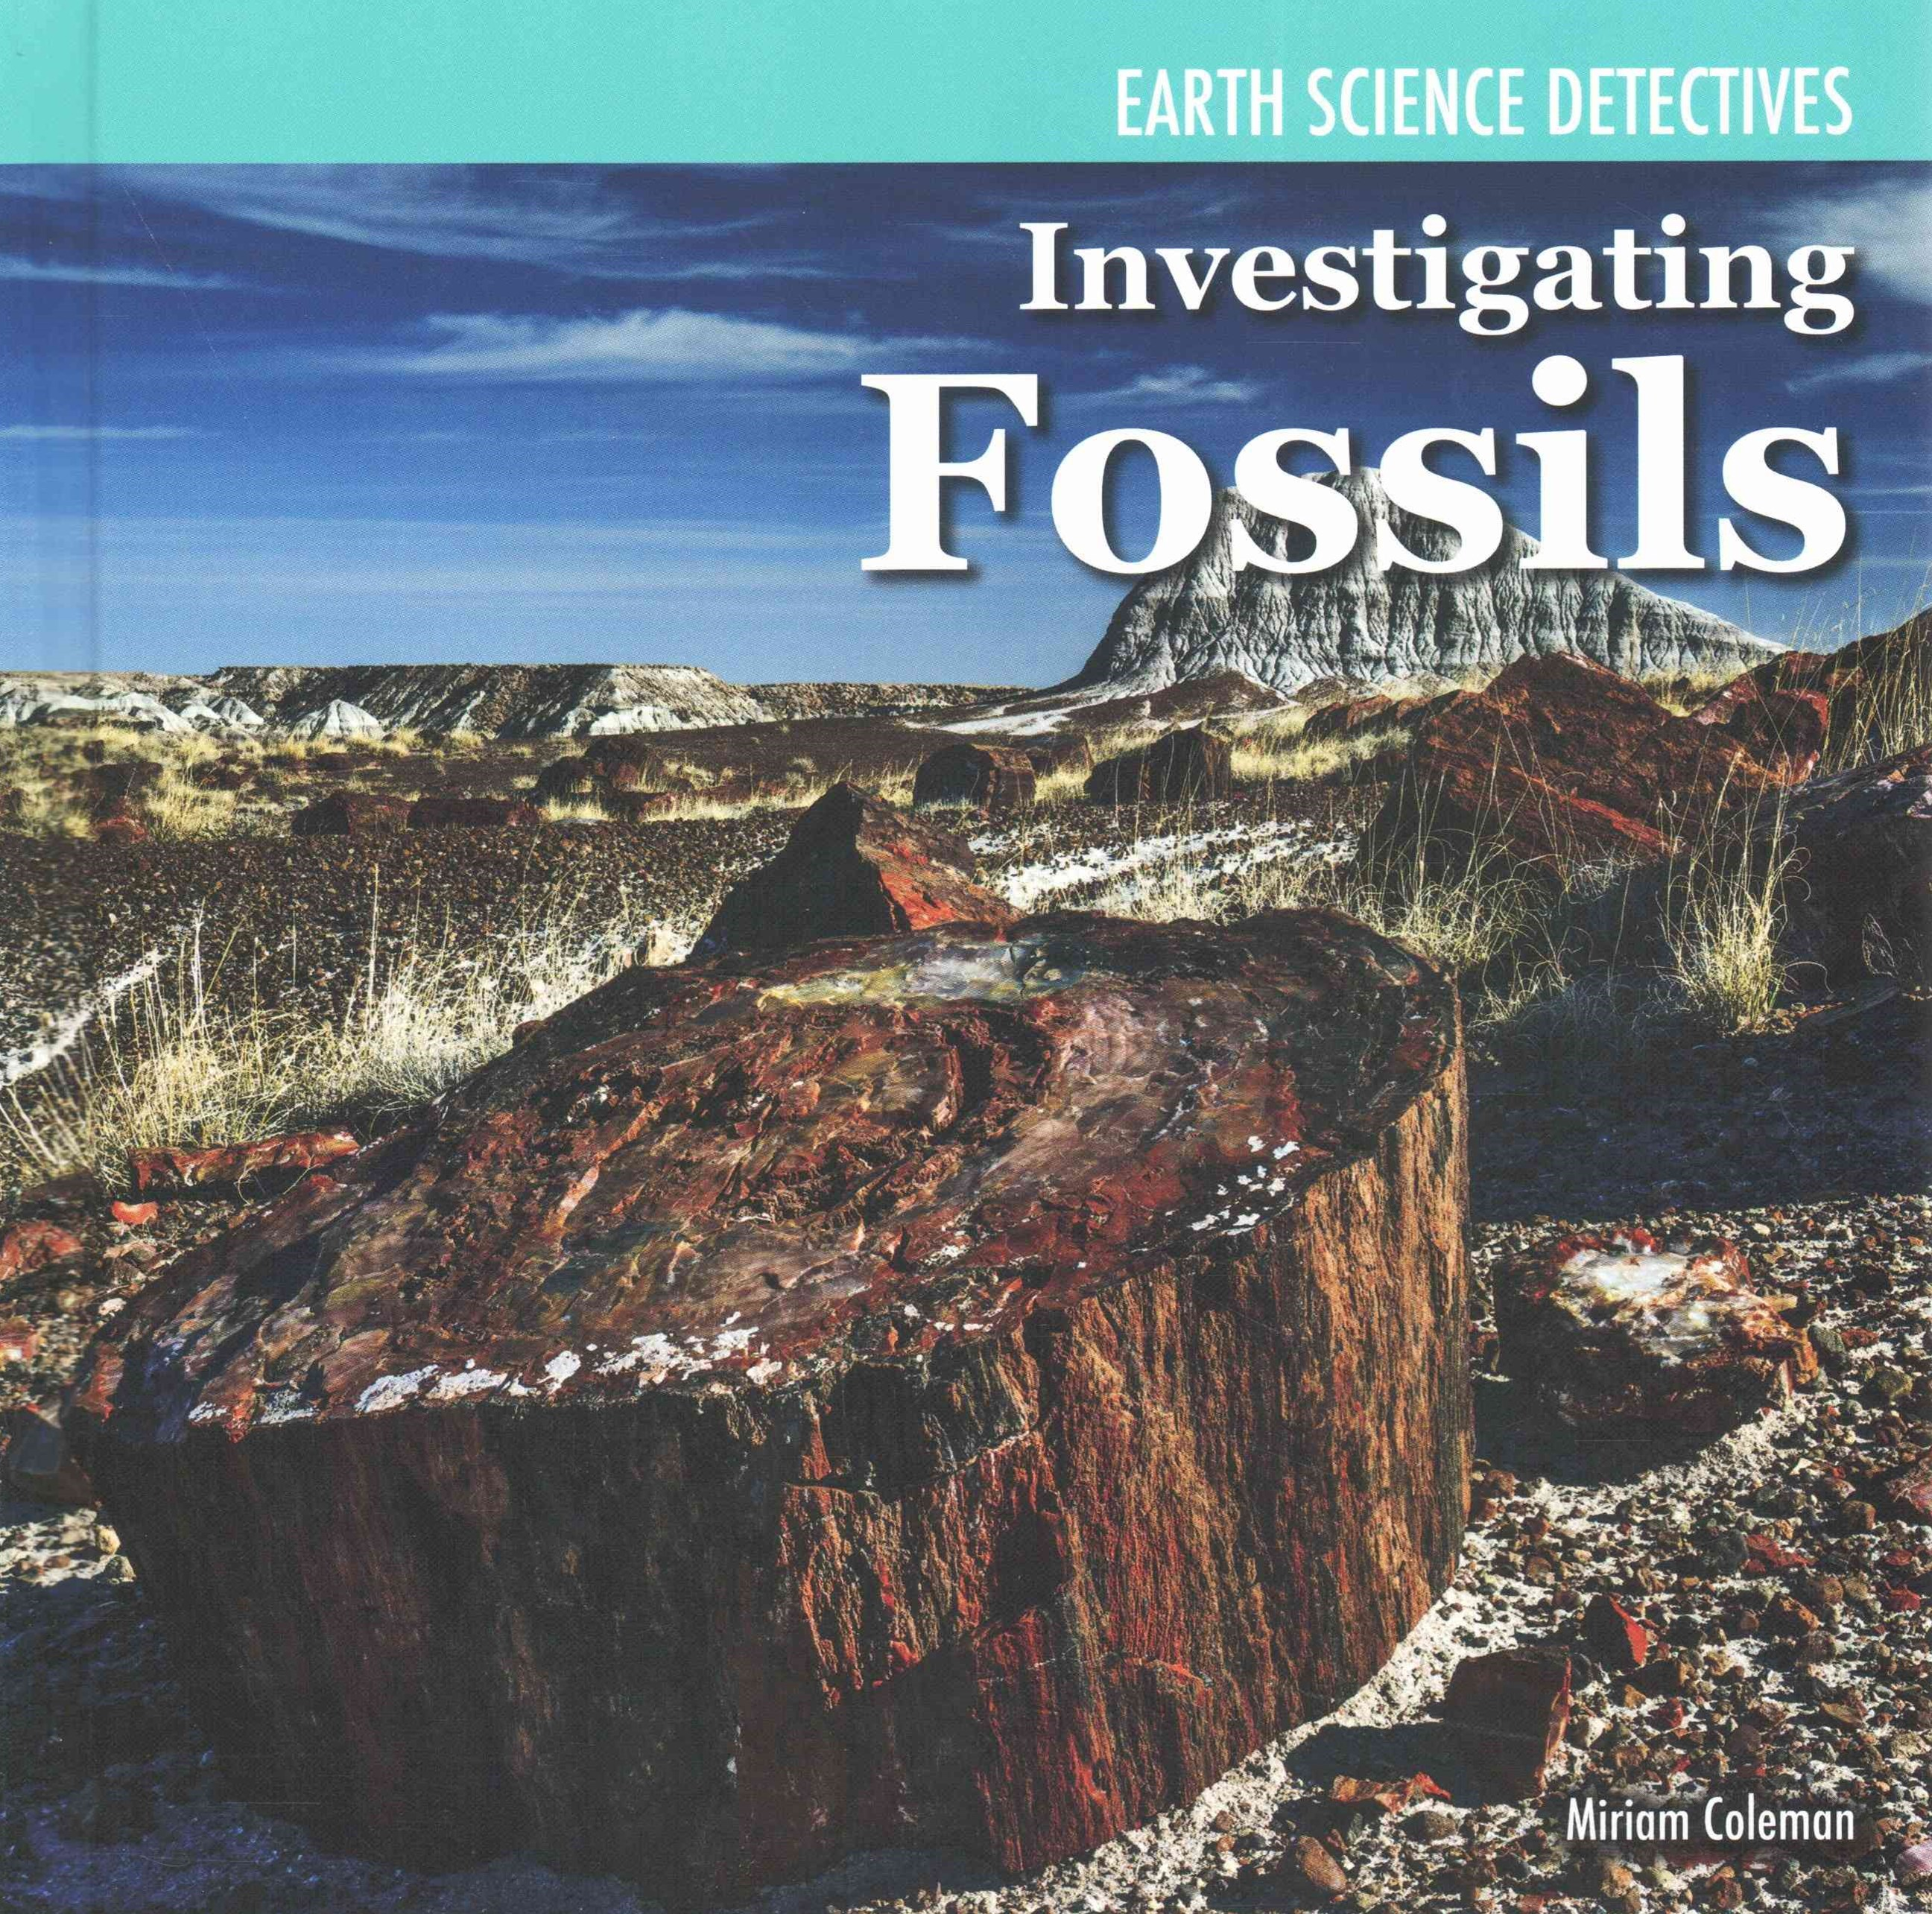 Using Fossils to Learn about Earth